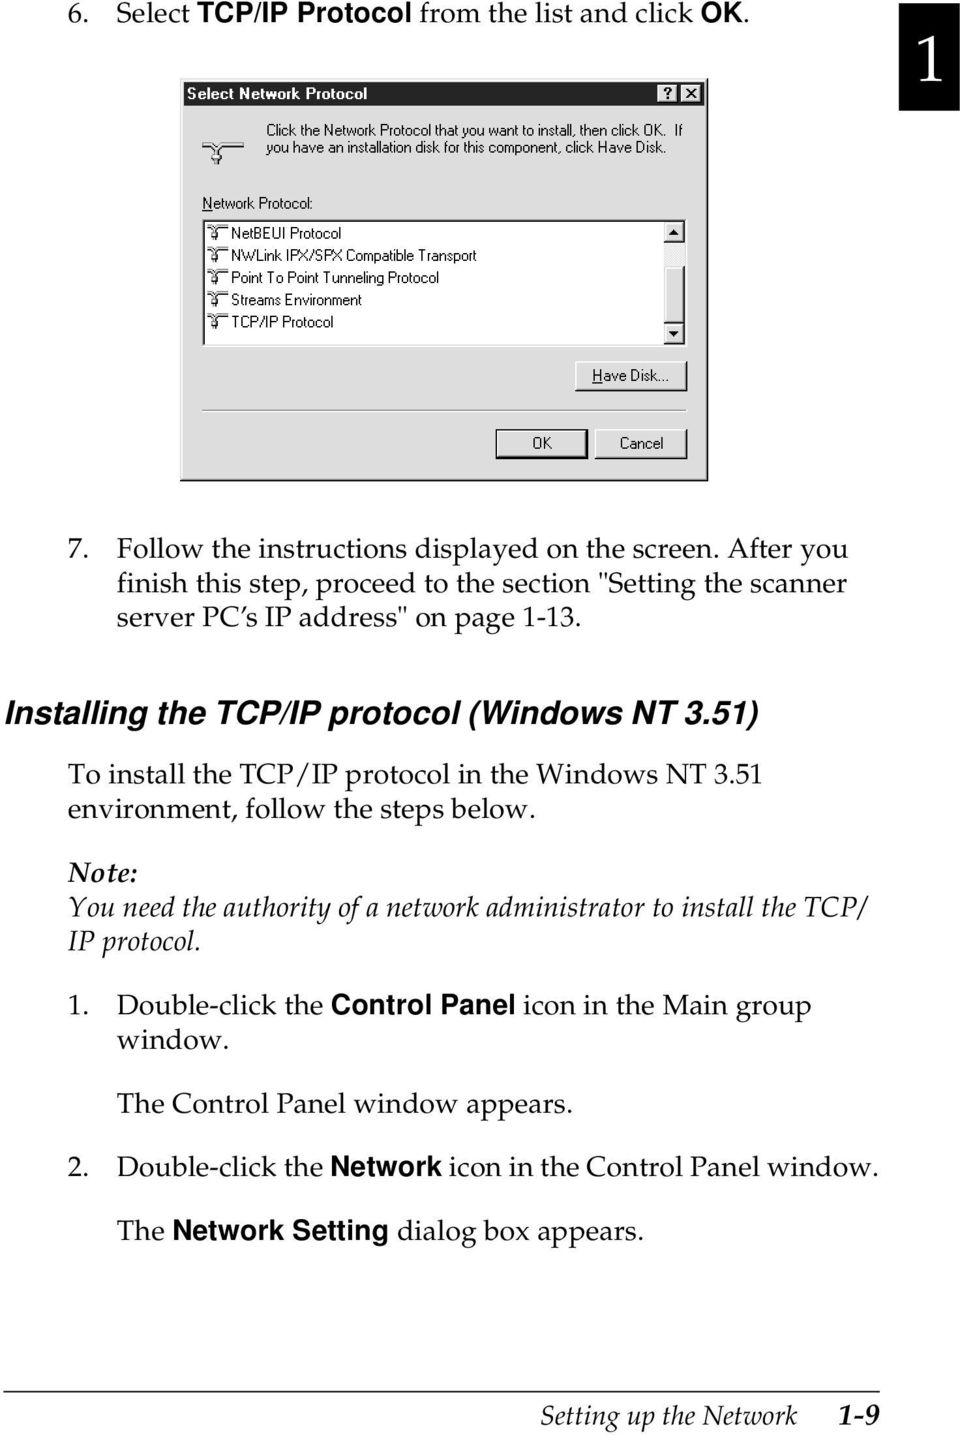 51) To install the TCP/IP protocol in the Windows NT 3.51 environment, follow the steps below.